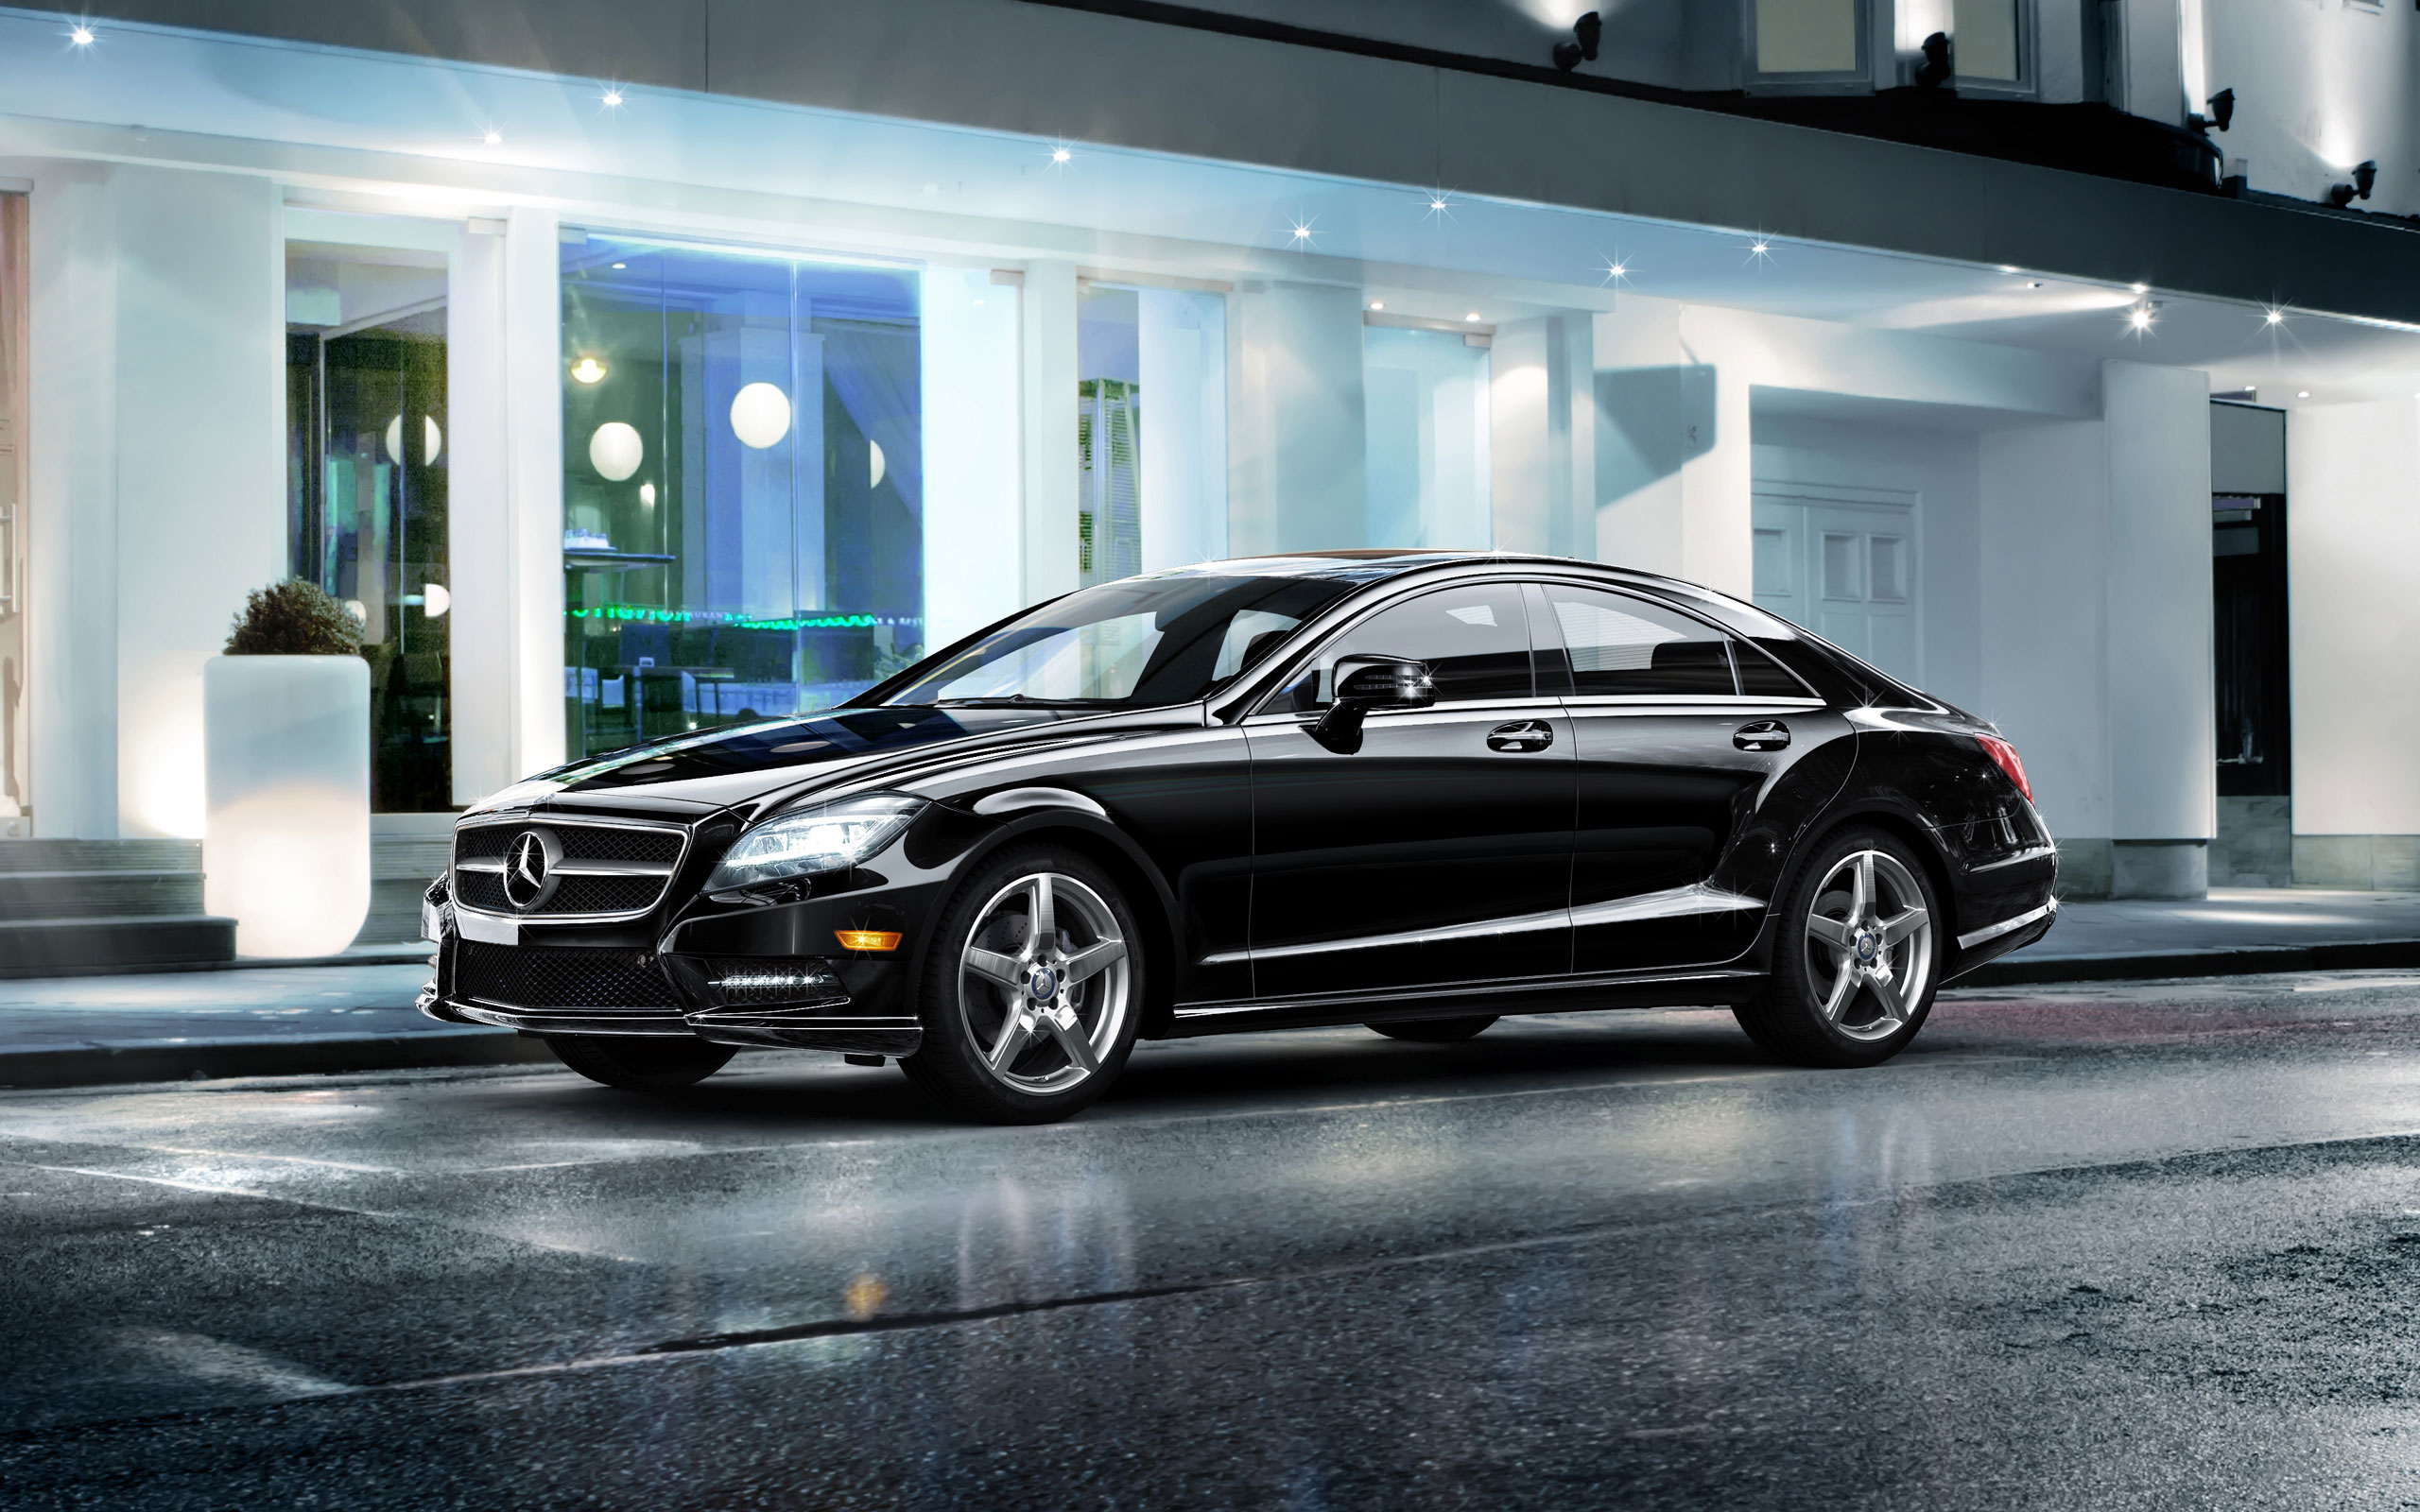 2014 Mercedes Benz Coupe Wallpapers Hd Wallpapers